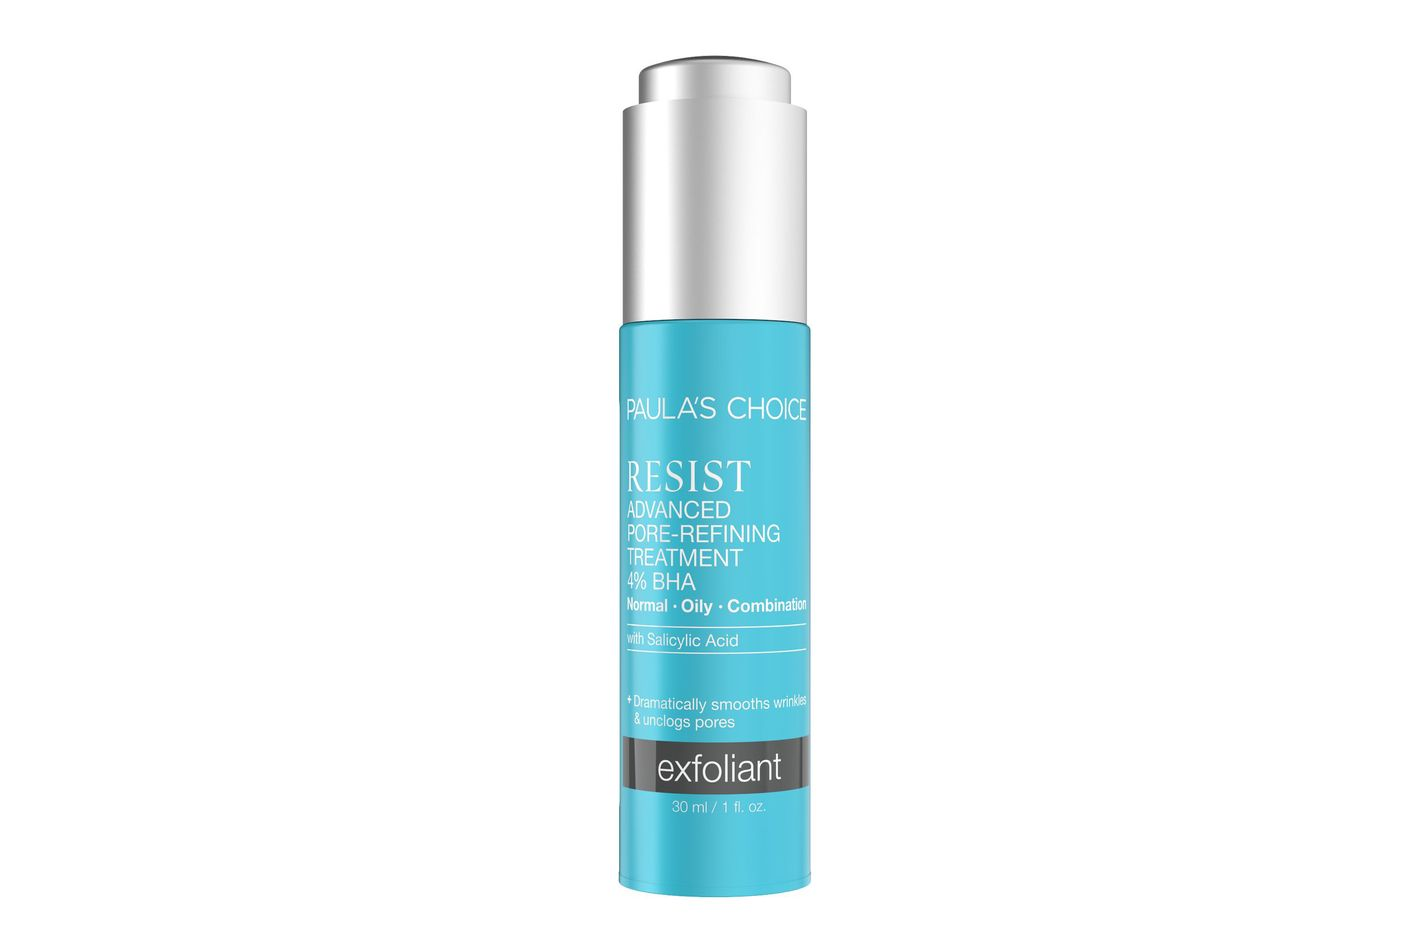 Paula's Choice RESIST Advanced Pore Refining Treatment 4 Percent BHA